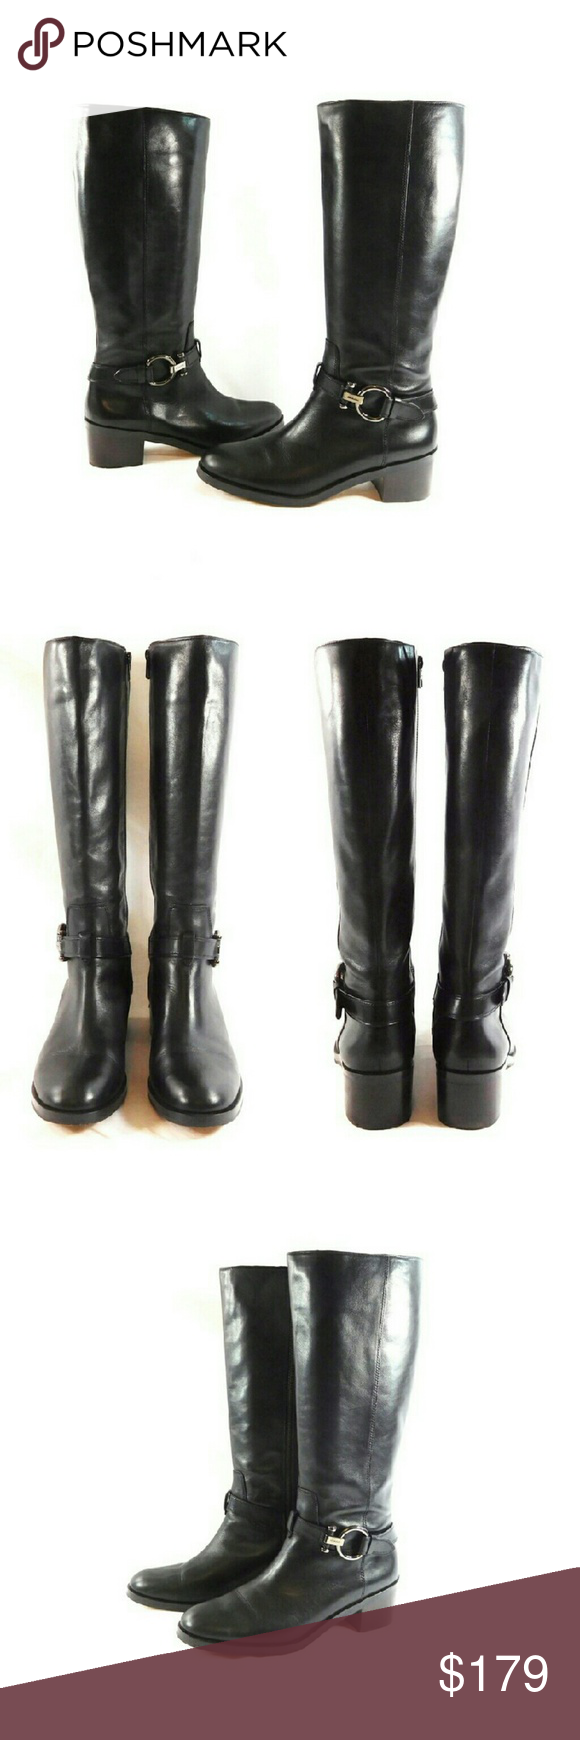 "Coach Carolina Black Leather Riding Boots Thanks for checking out my closet. I take all my own pics. The boots are authentic and in great pre-owned condition, with original box. Boots are made of leather with 2"" heel, 17"" shaft height, and 16"" calf circumference. Coach Shoes Heeled Boots"